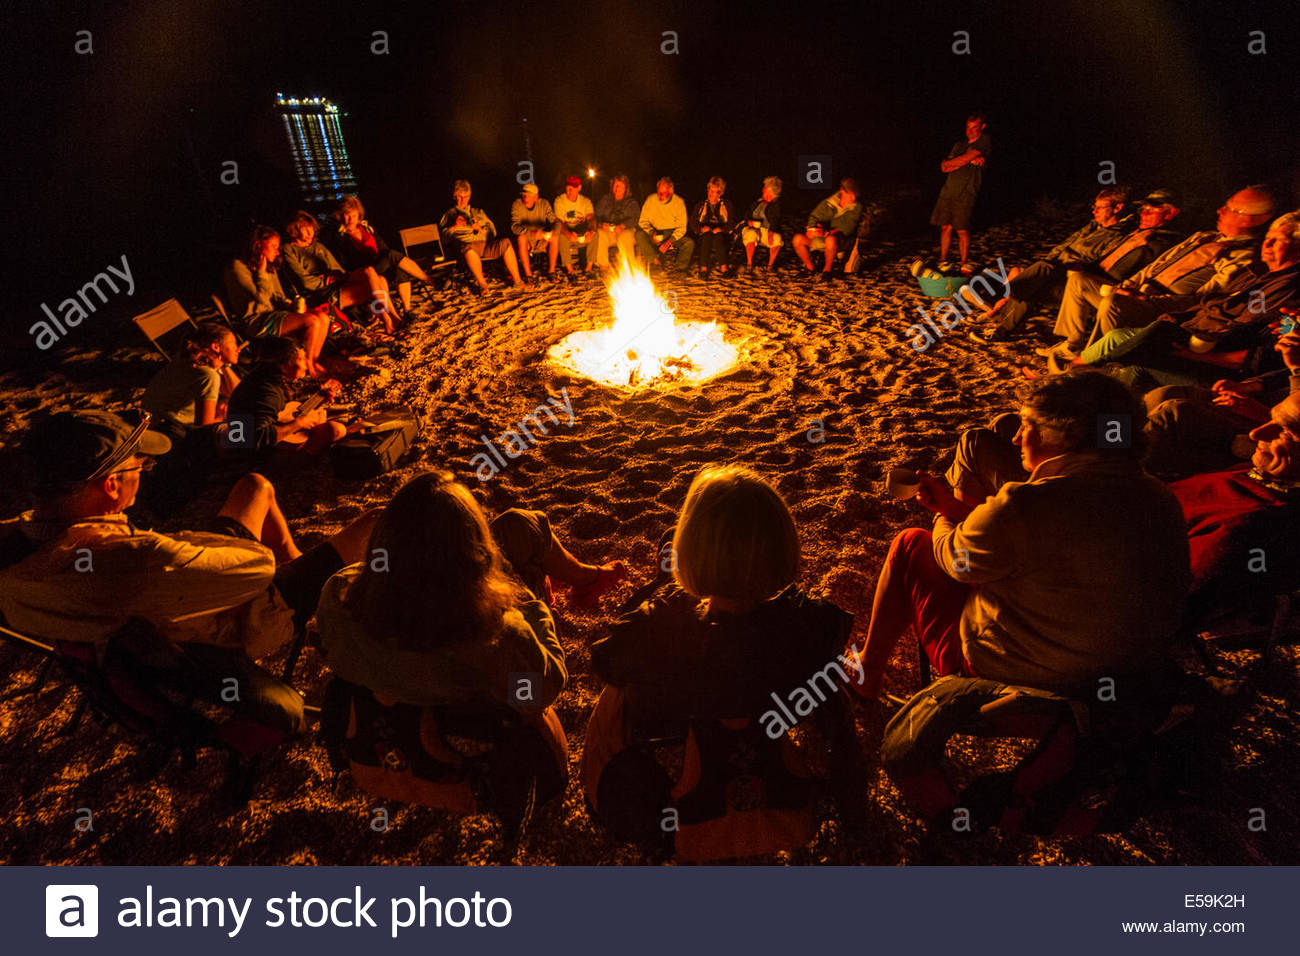 group of people sitting around camp fire mexico stock photo